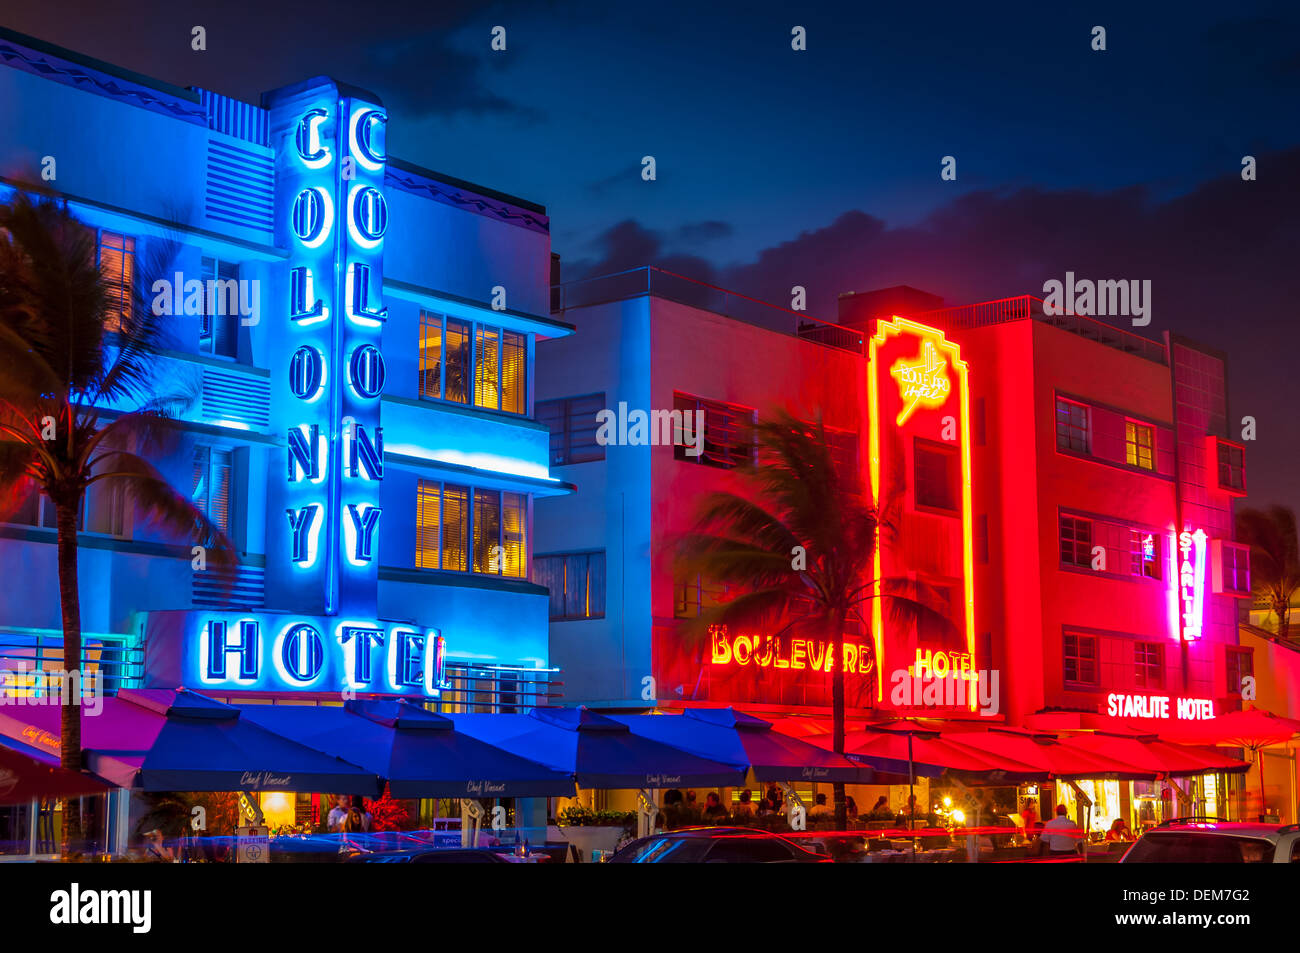 colony hotel,boulevard hotel,ocean drive, south beach, miami,florida,usa - Stock Image